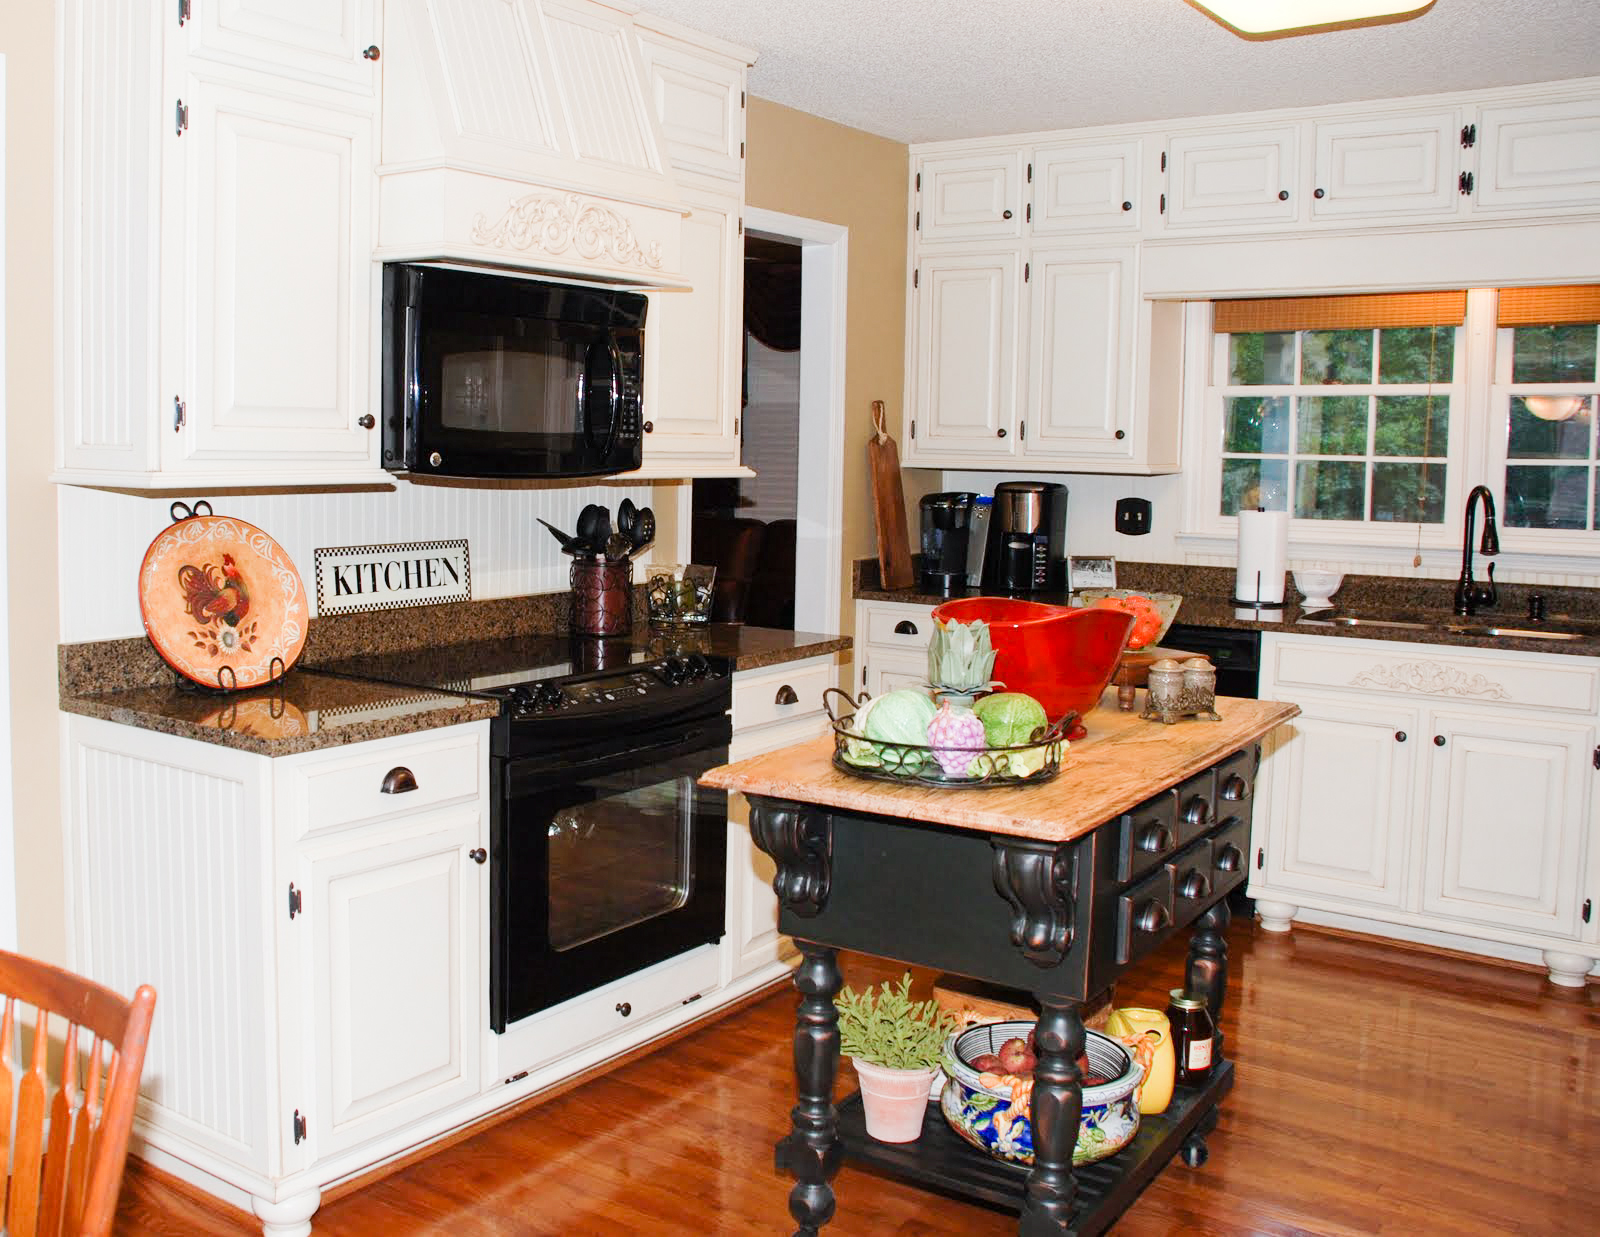 White Kitchen Oak remodelaholic | from oak kitchen cabinets to painted white cabinets